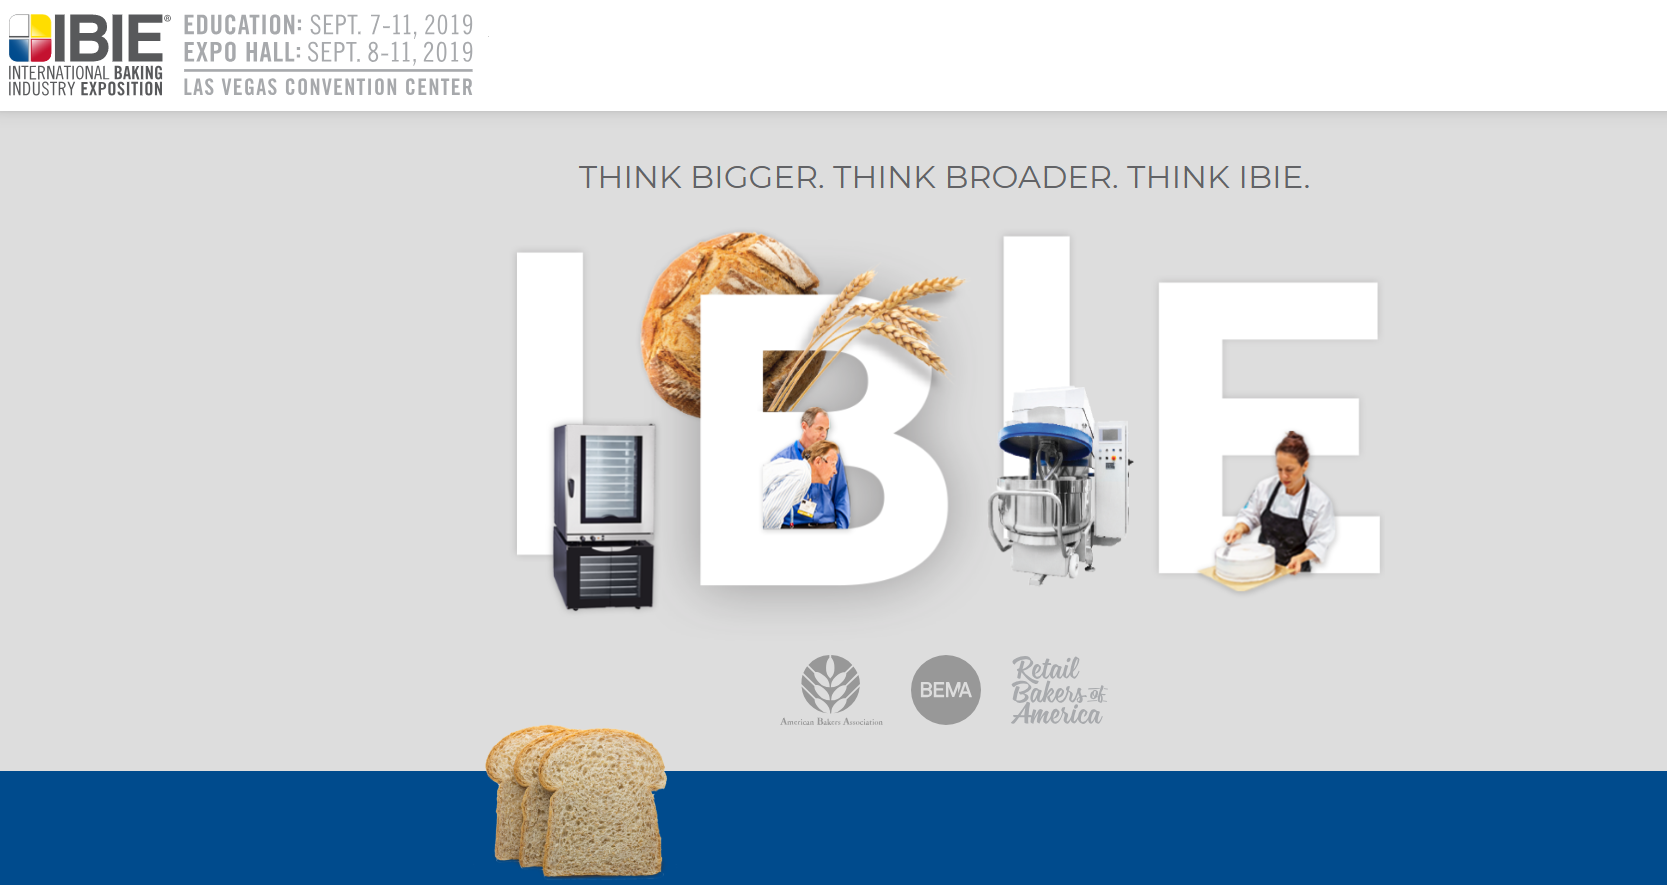 IBIE | International Baking Industry Exposition - American